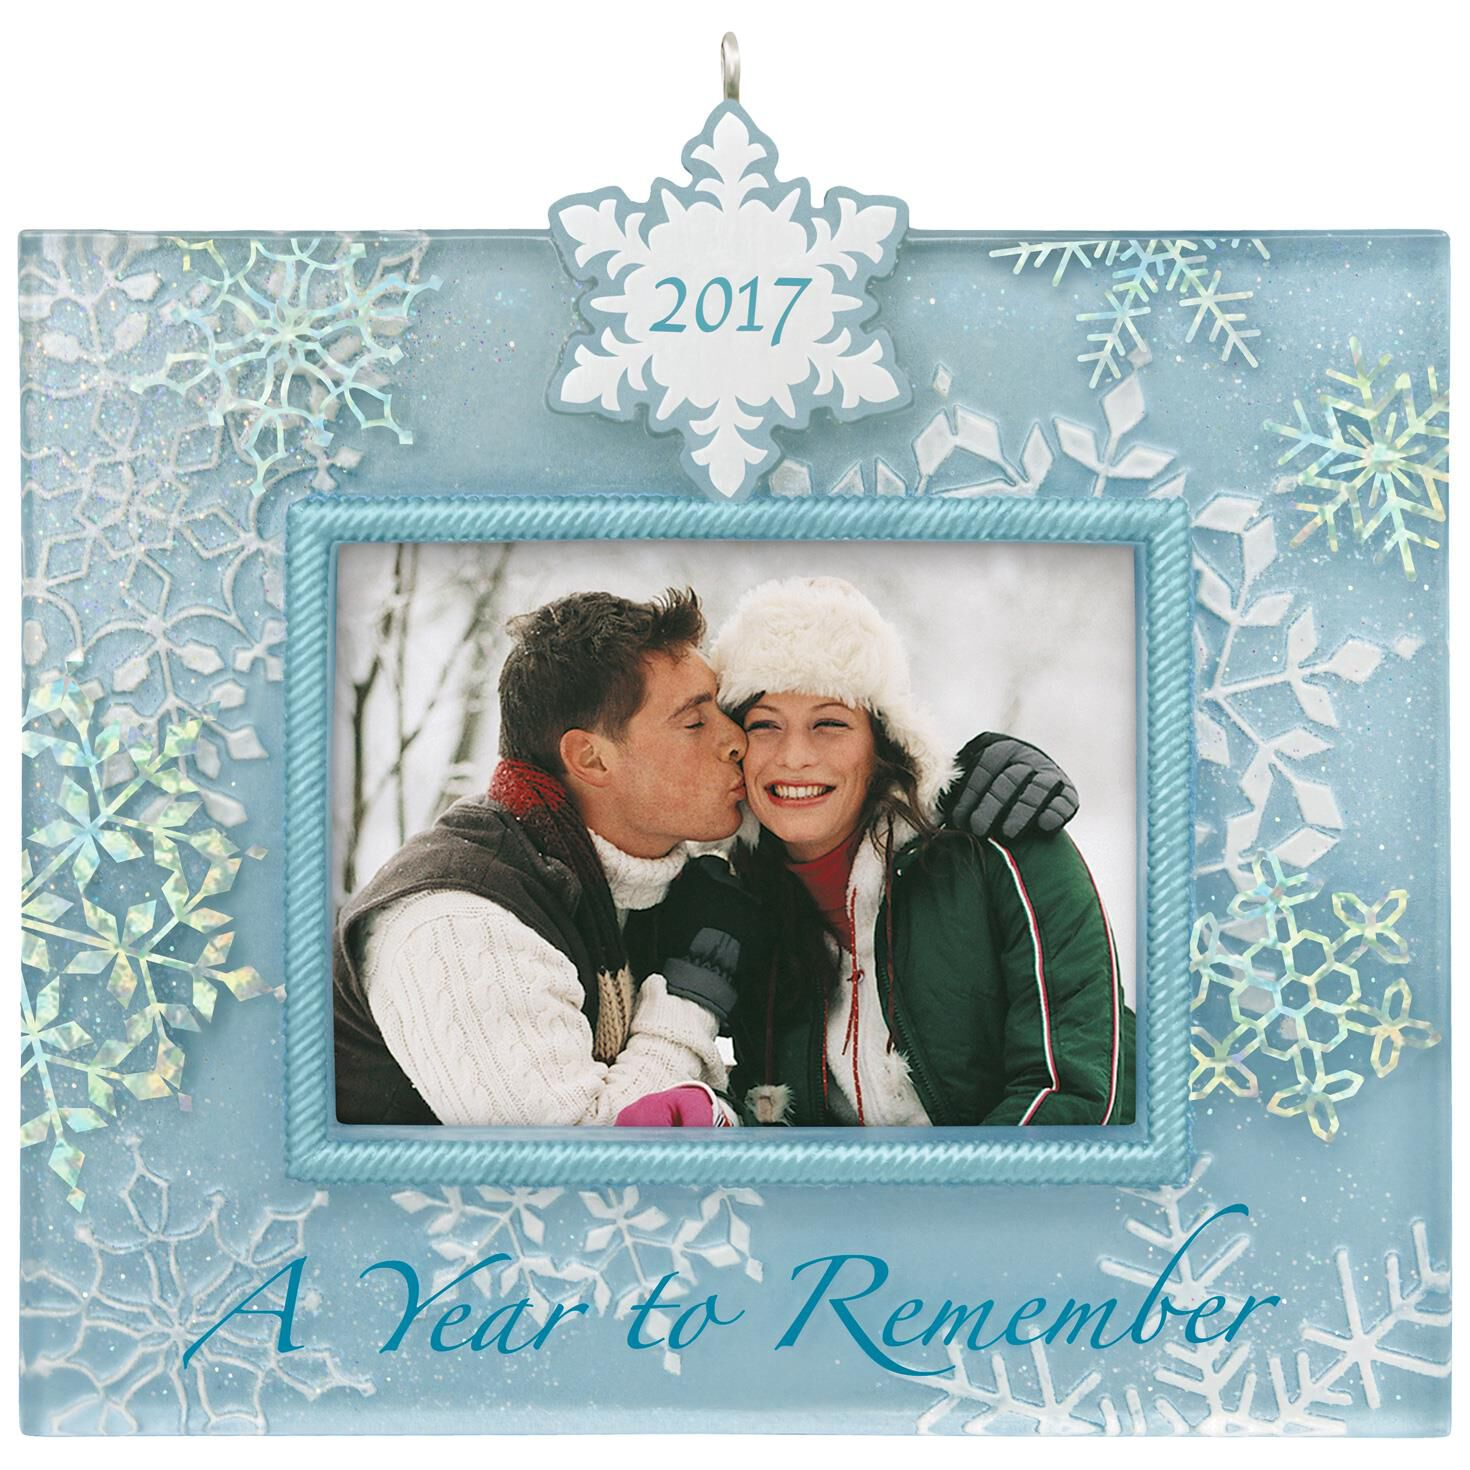 A Year to Remember 2017 Snowflake Picture Frame Ornament - Keepsake ...